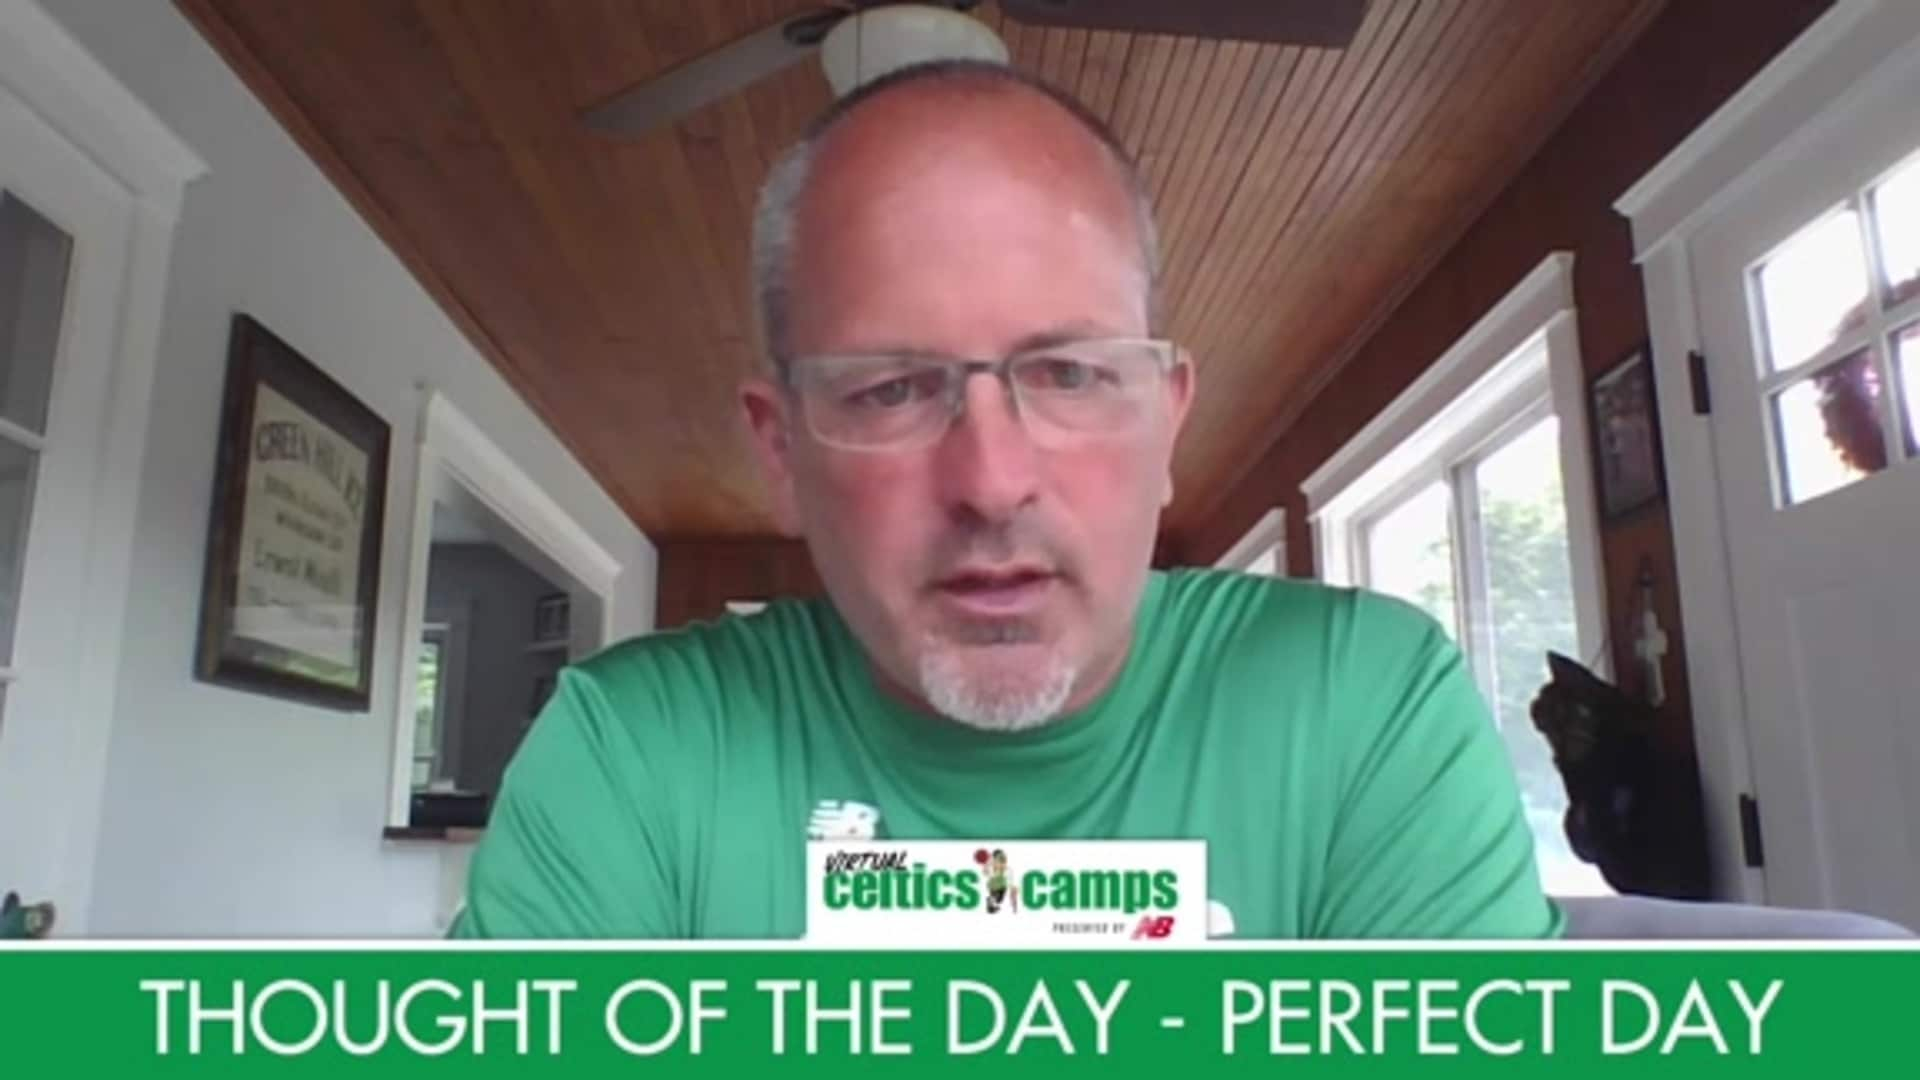 Virtual Celtics Camps - Thought of the Day Perfect Day